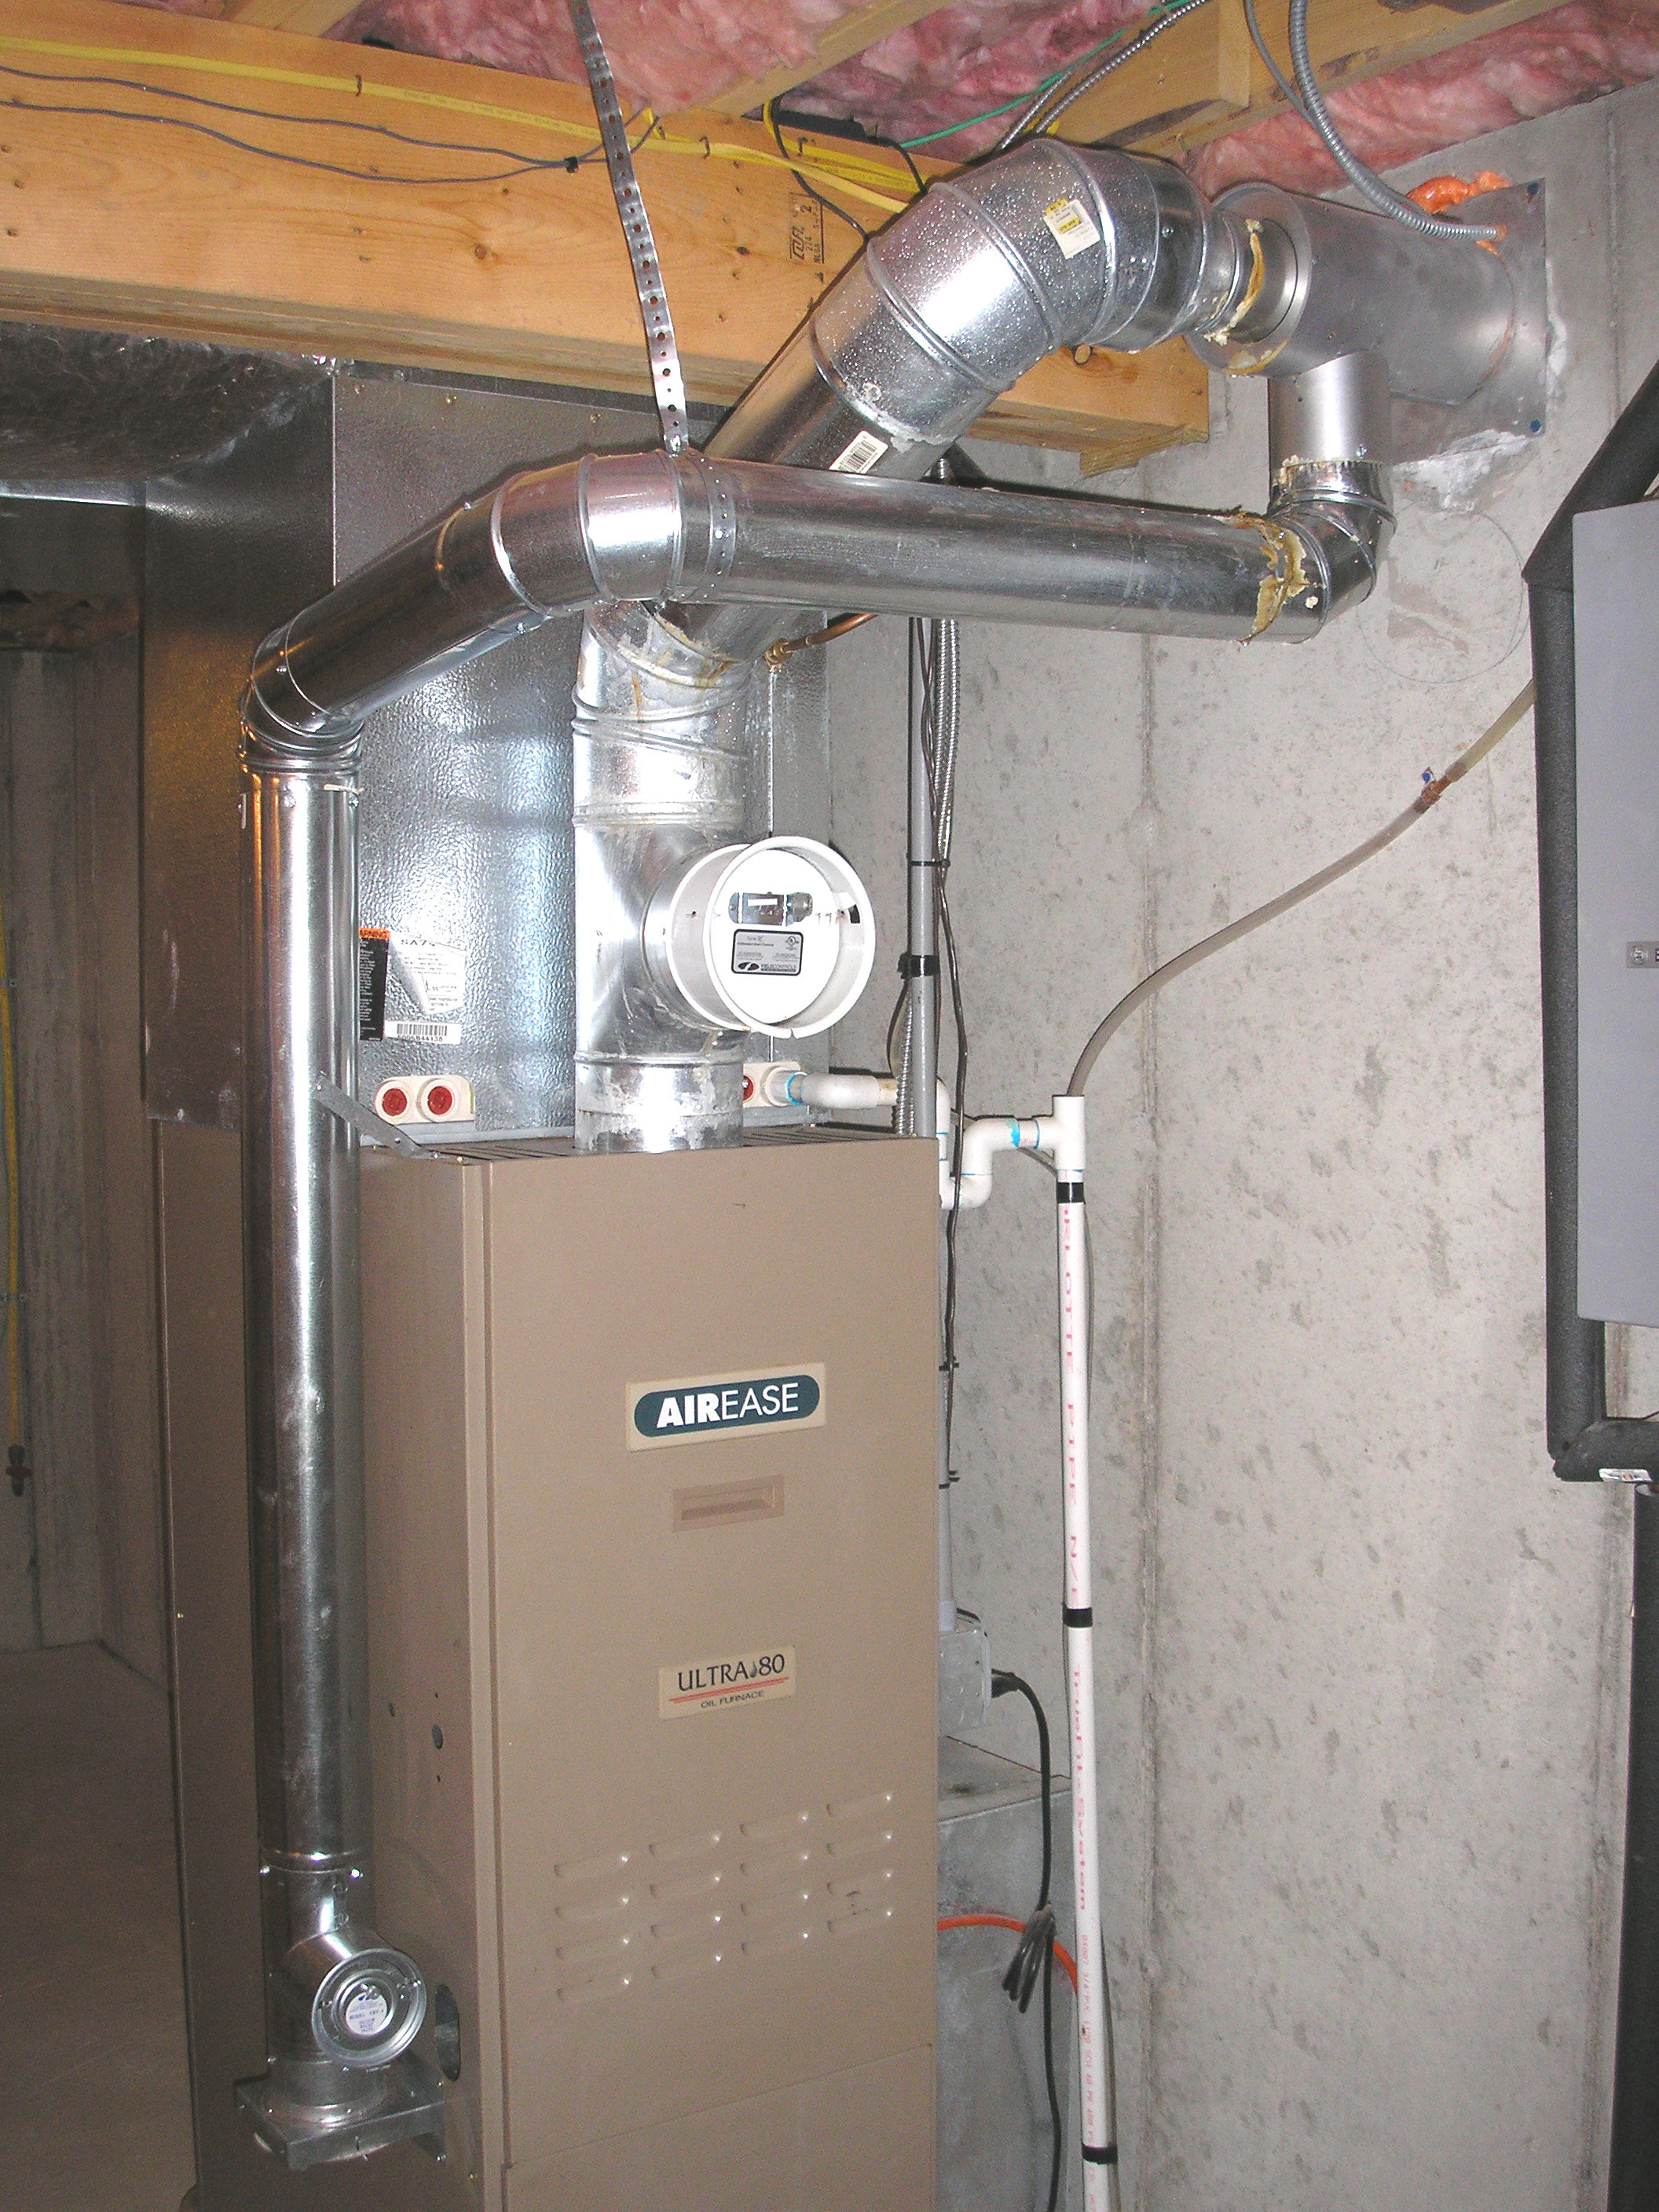 Power vent condensation problems  Heating Help: The Wall